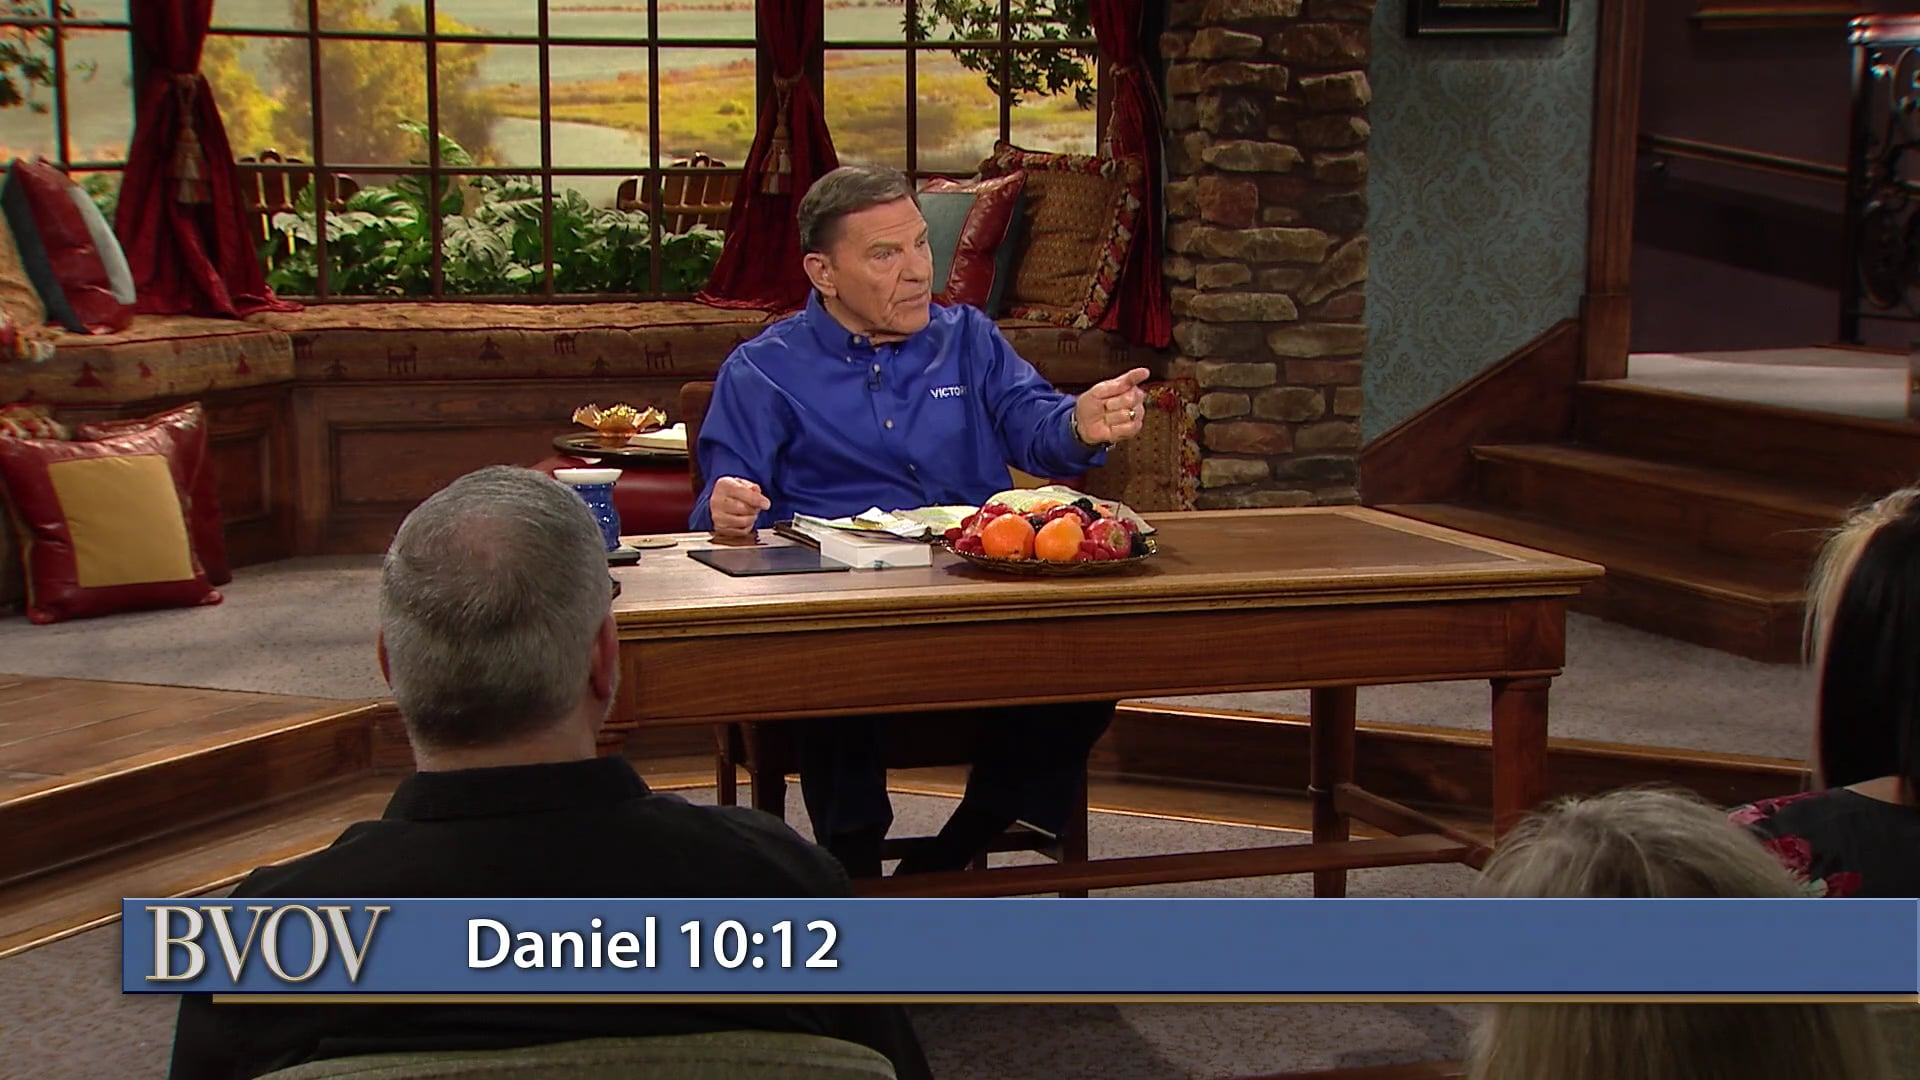 Are you intimidated by demonic forces? Watch Kenneth Copeland on Believer's Voice of Victory as he teaches how faith expects victory over the kingdom of darkness. Victory is always sure through the power of the Name of Jesus!